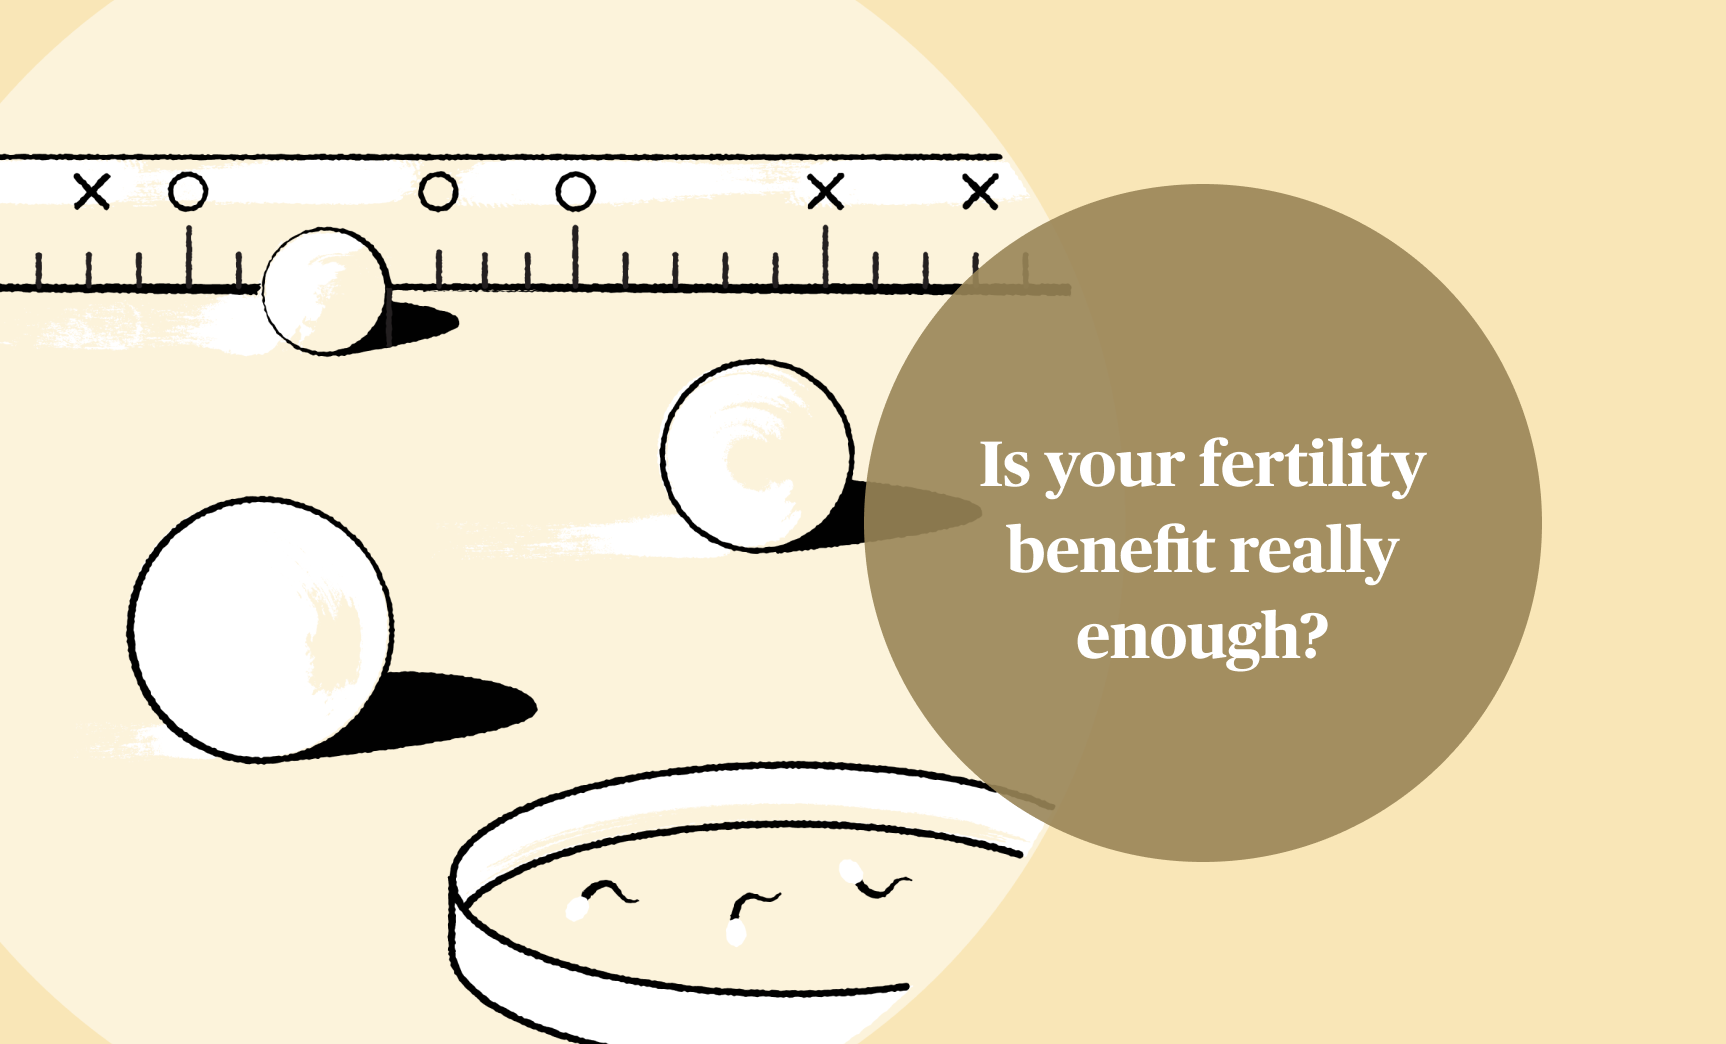 Is your fertility benefit really enough?